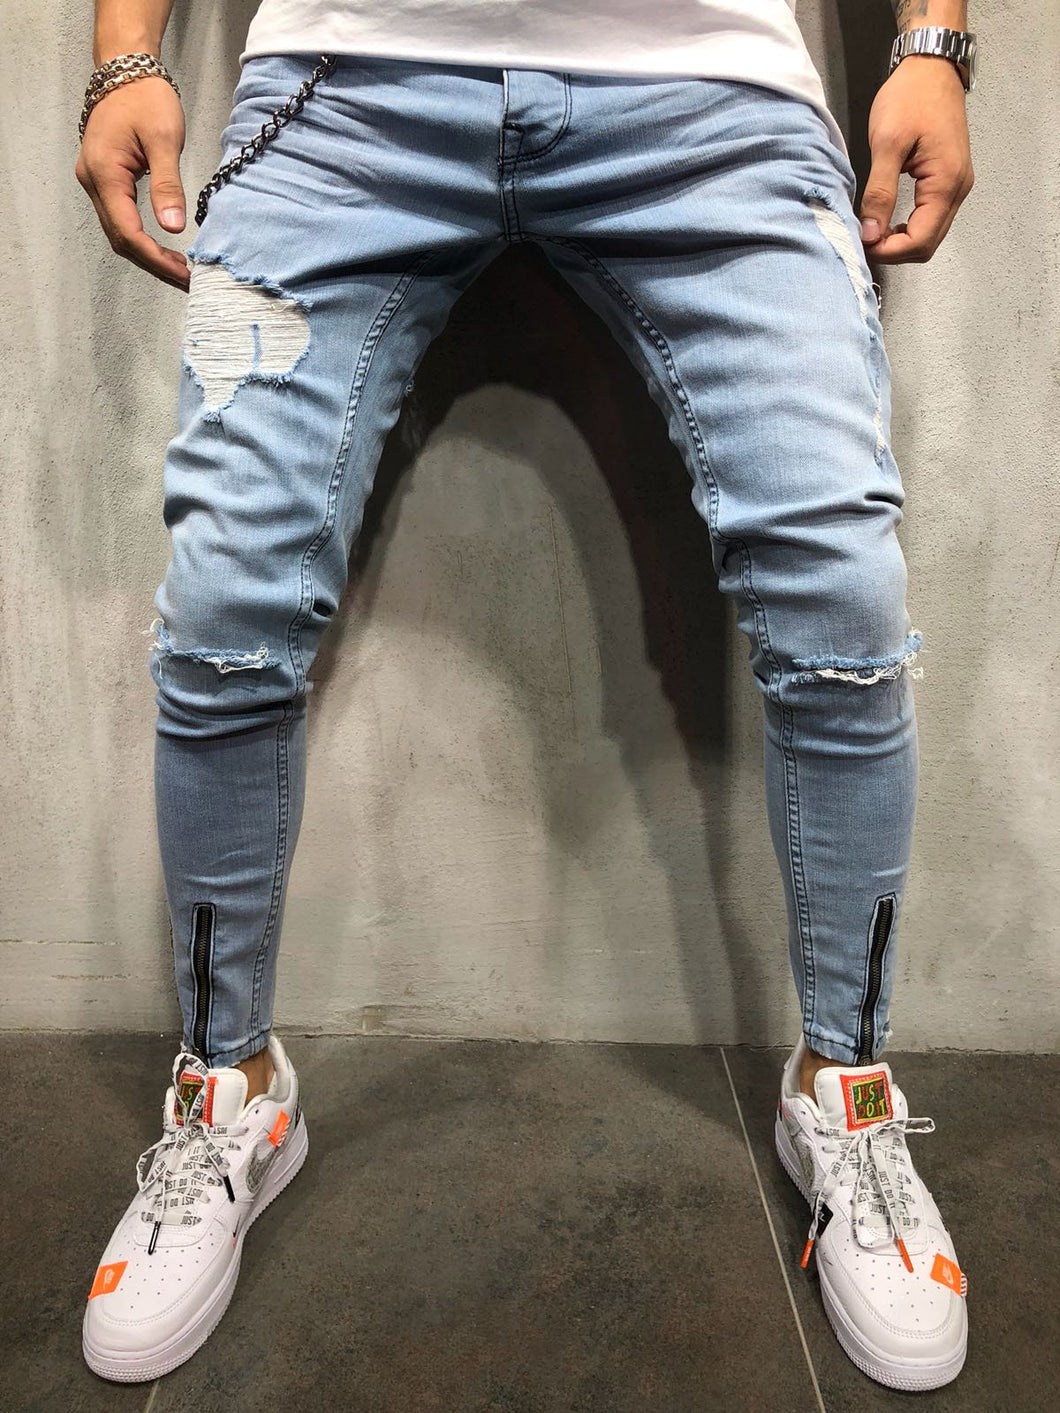 Light Blue Front Ankle Zip Distressed Skinny Fit Denim A185 Streetwear Jeans